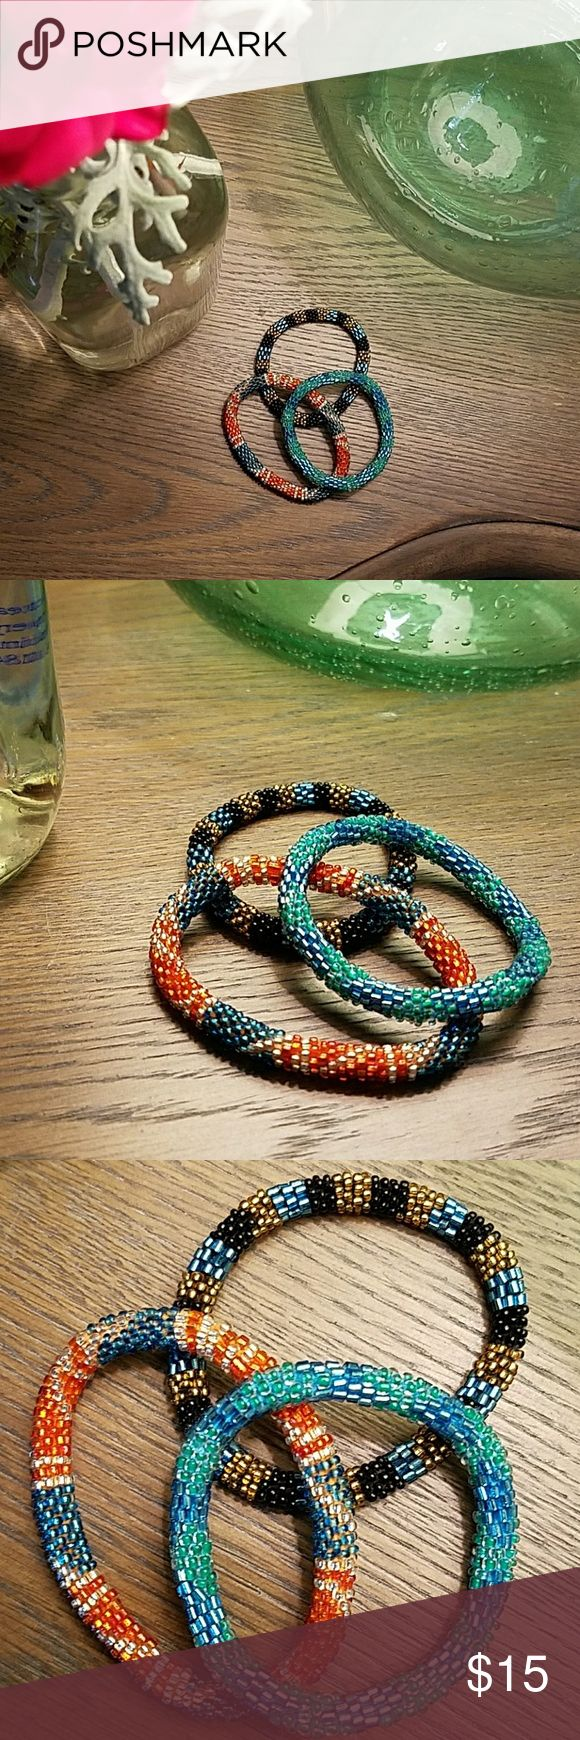 Set of 3 beaded bracelets? These are cool beaded bracelets I bought that help support women in Nepal. Beautiful craftsmanship. NWOT Jewelry Bracelets